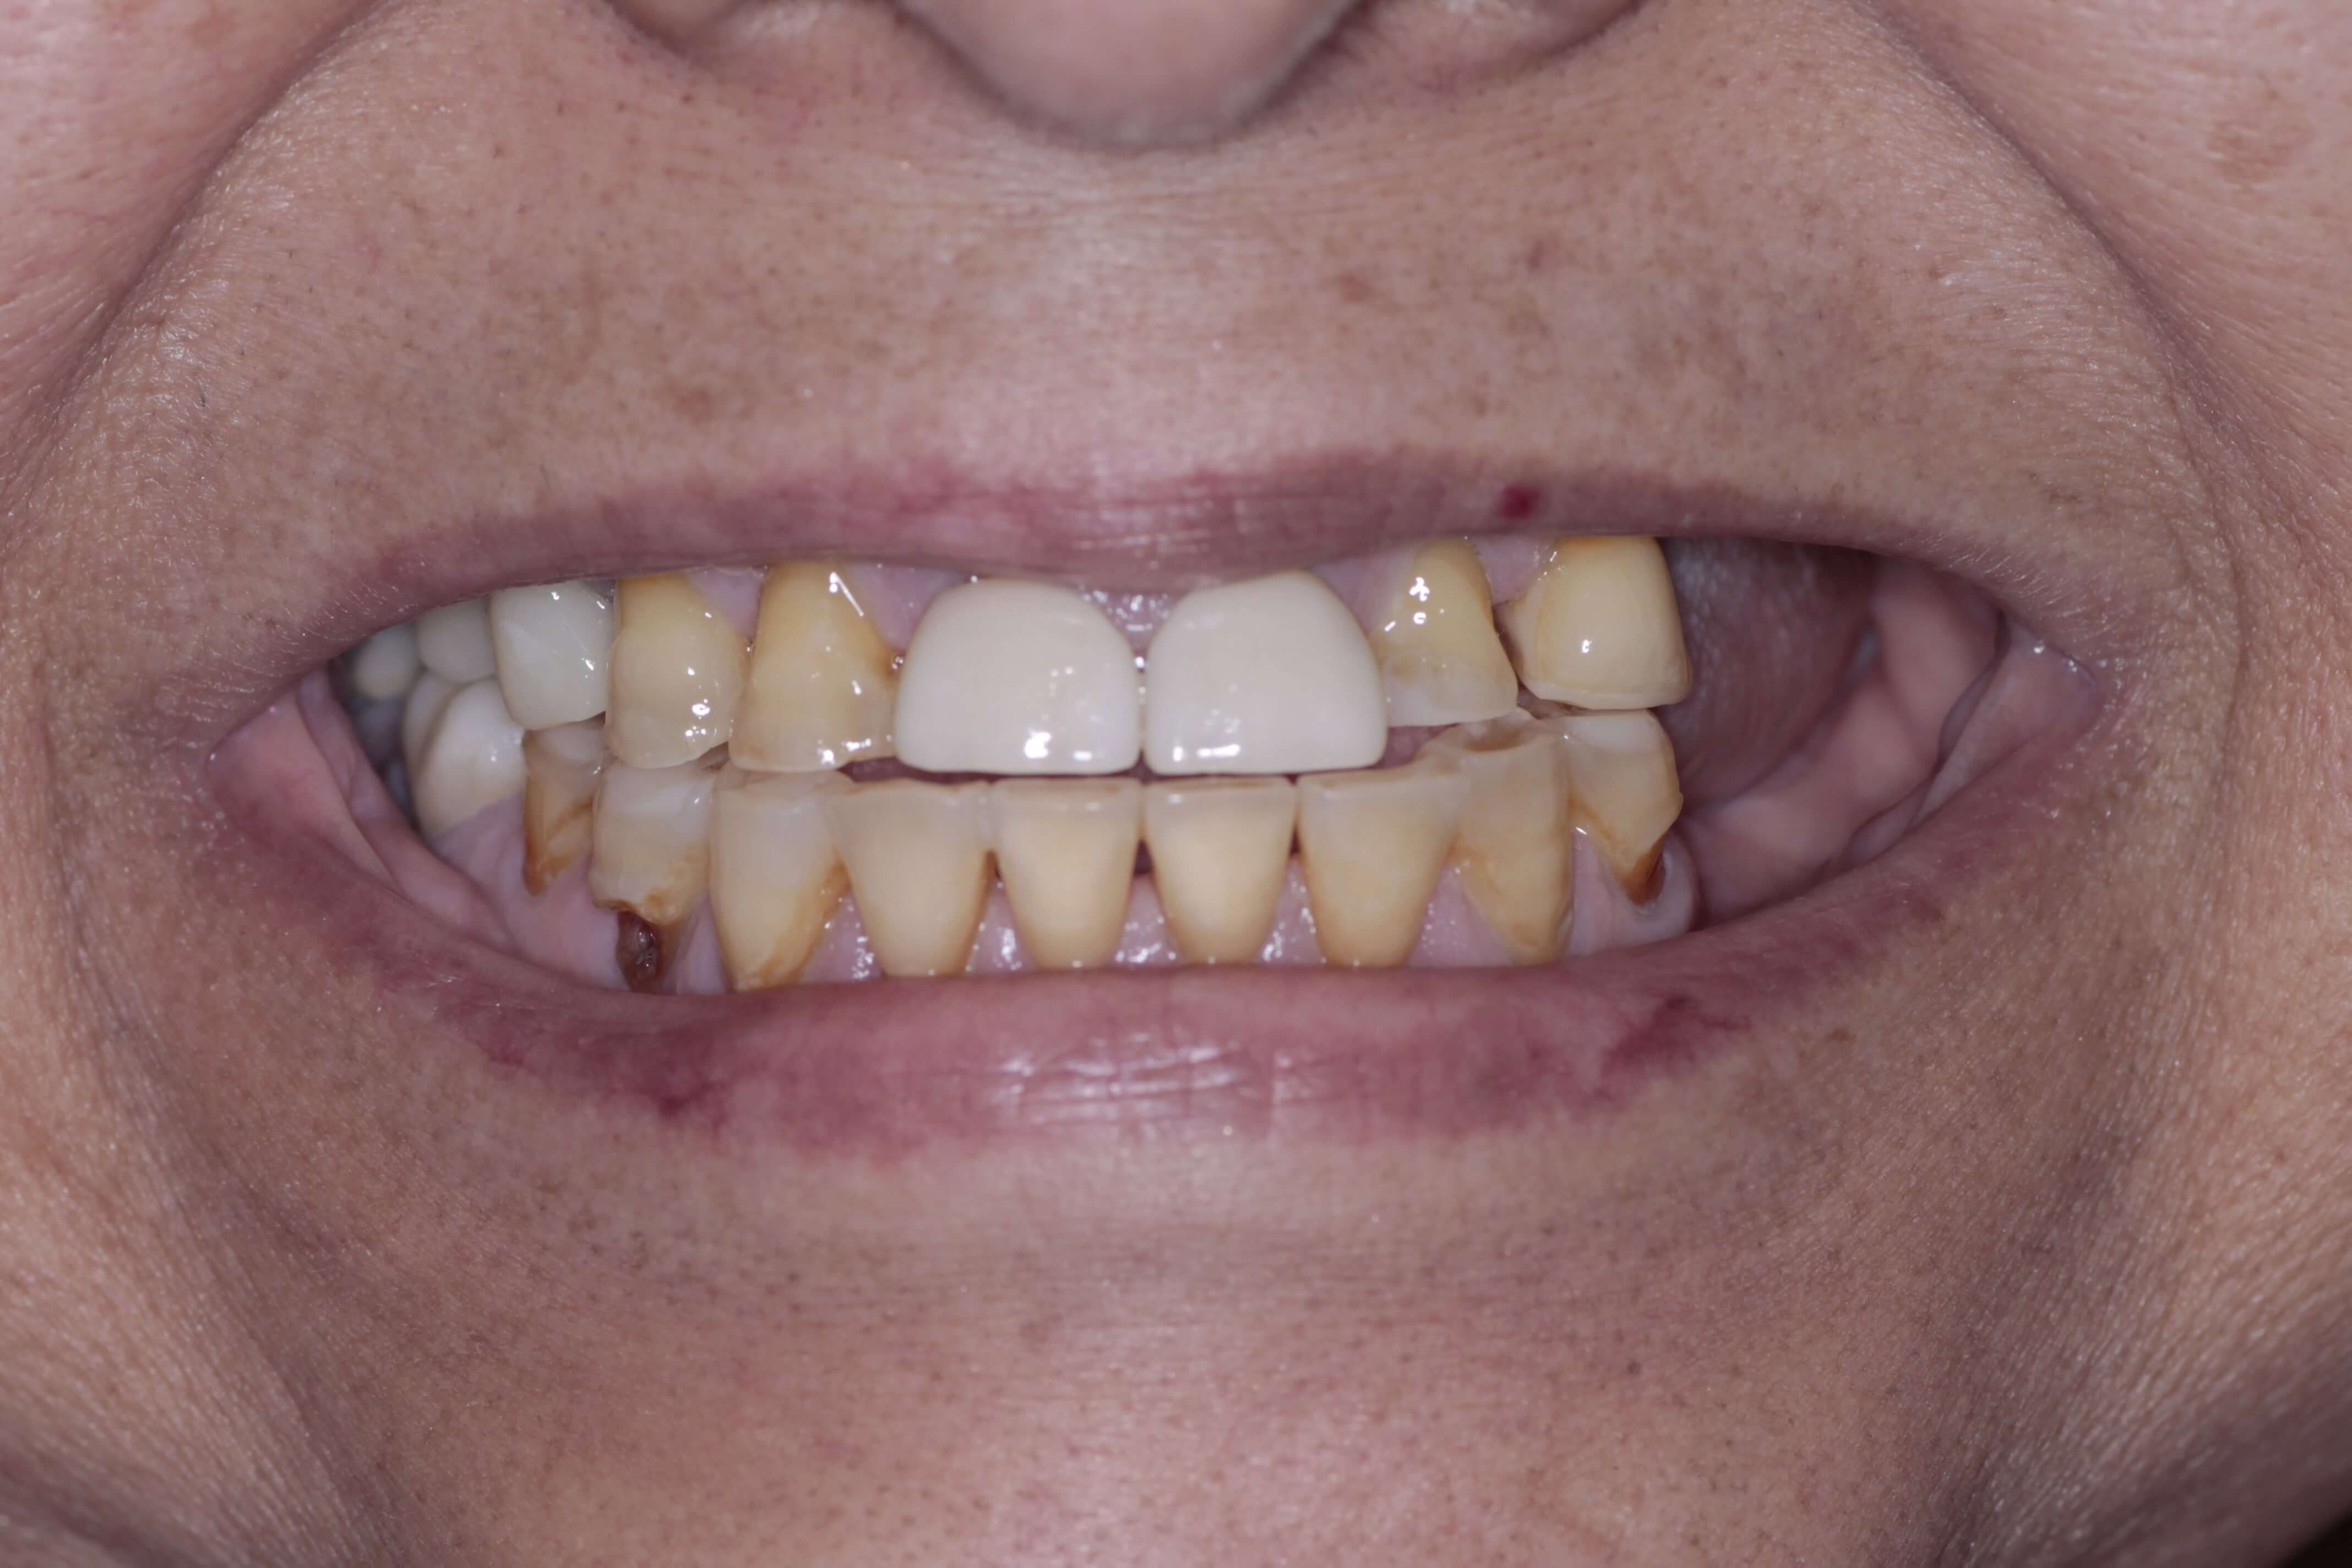 Unattractive and missing teeth